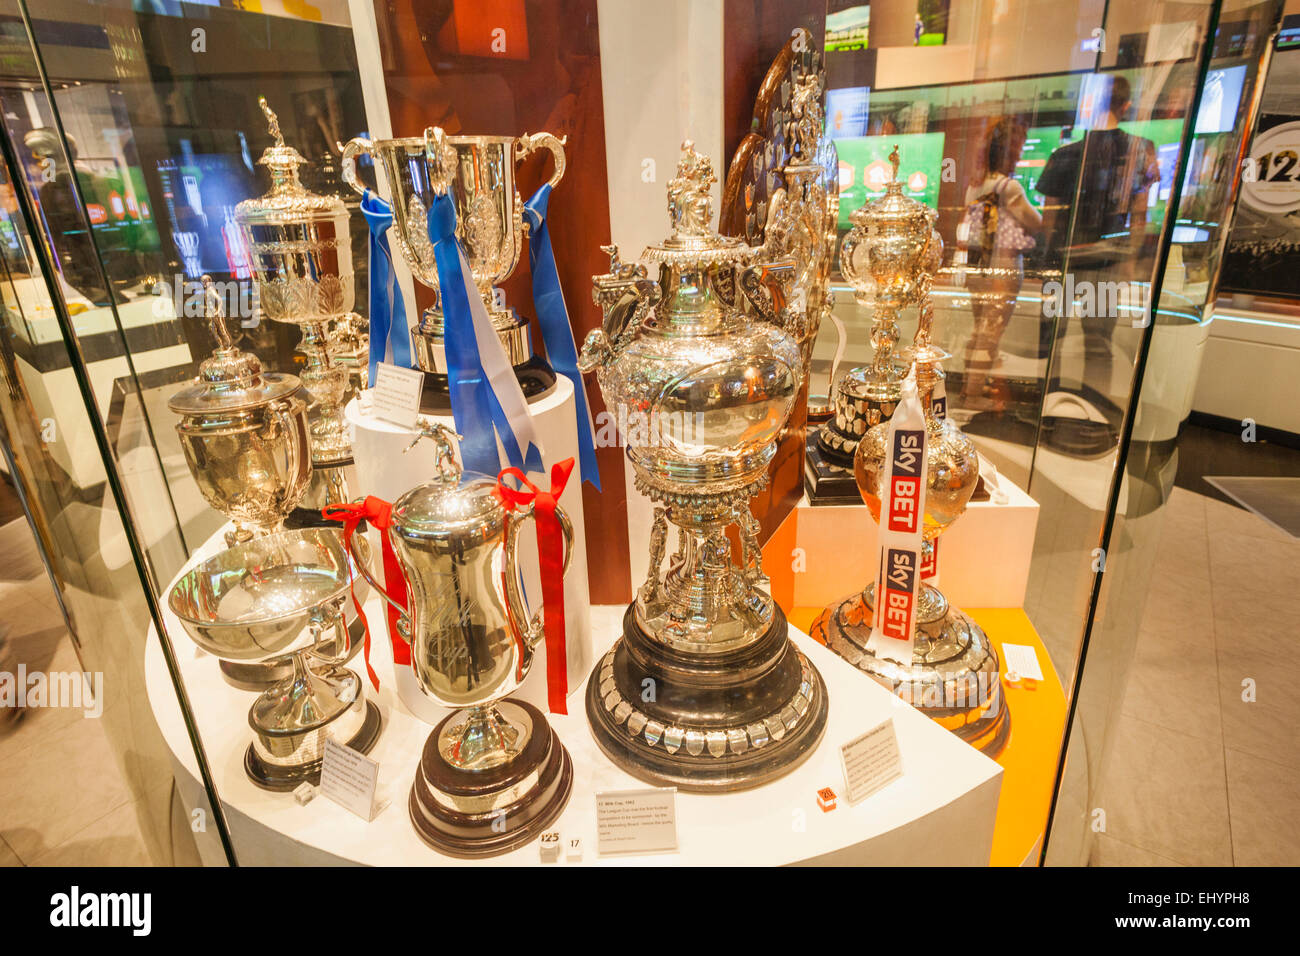 England Manchester City National Football Museum Exhibit Of Historical Cups And Trophies